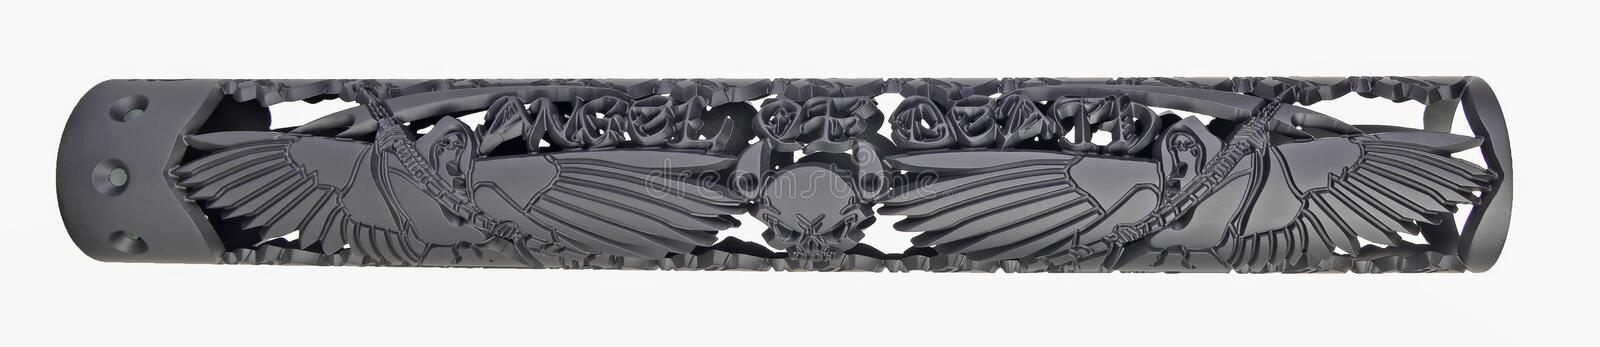 Custom Angel of Death Hand Guard for an AR15 royalty free stock images